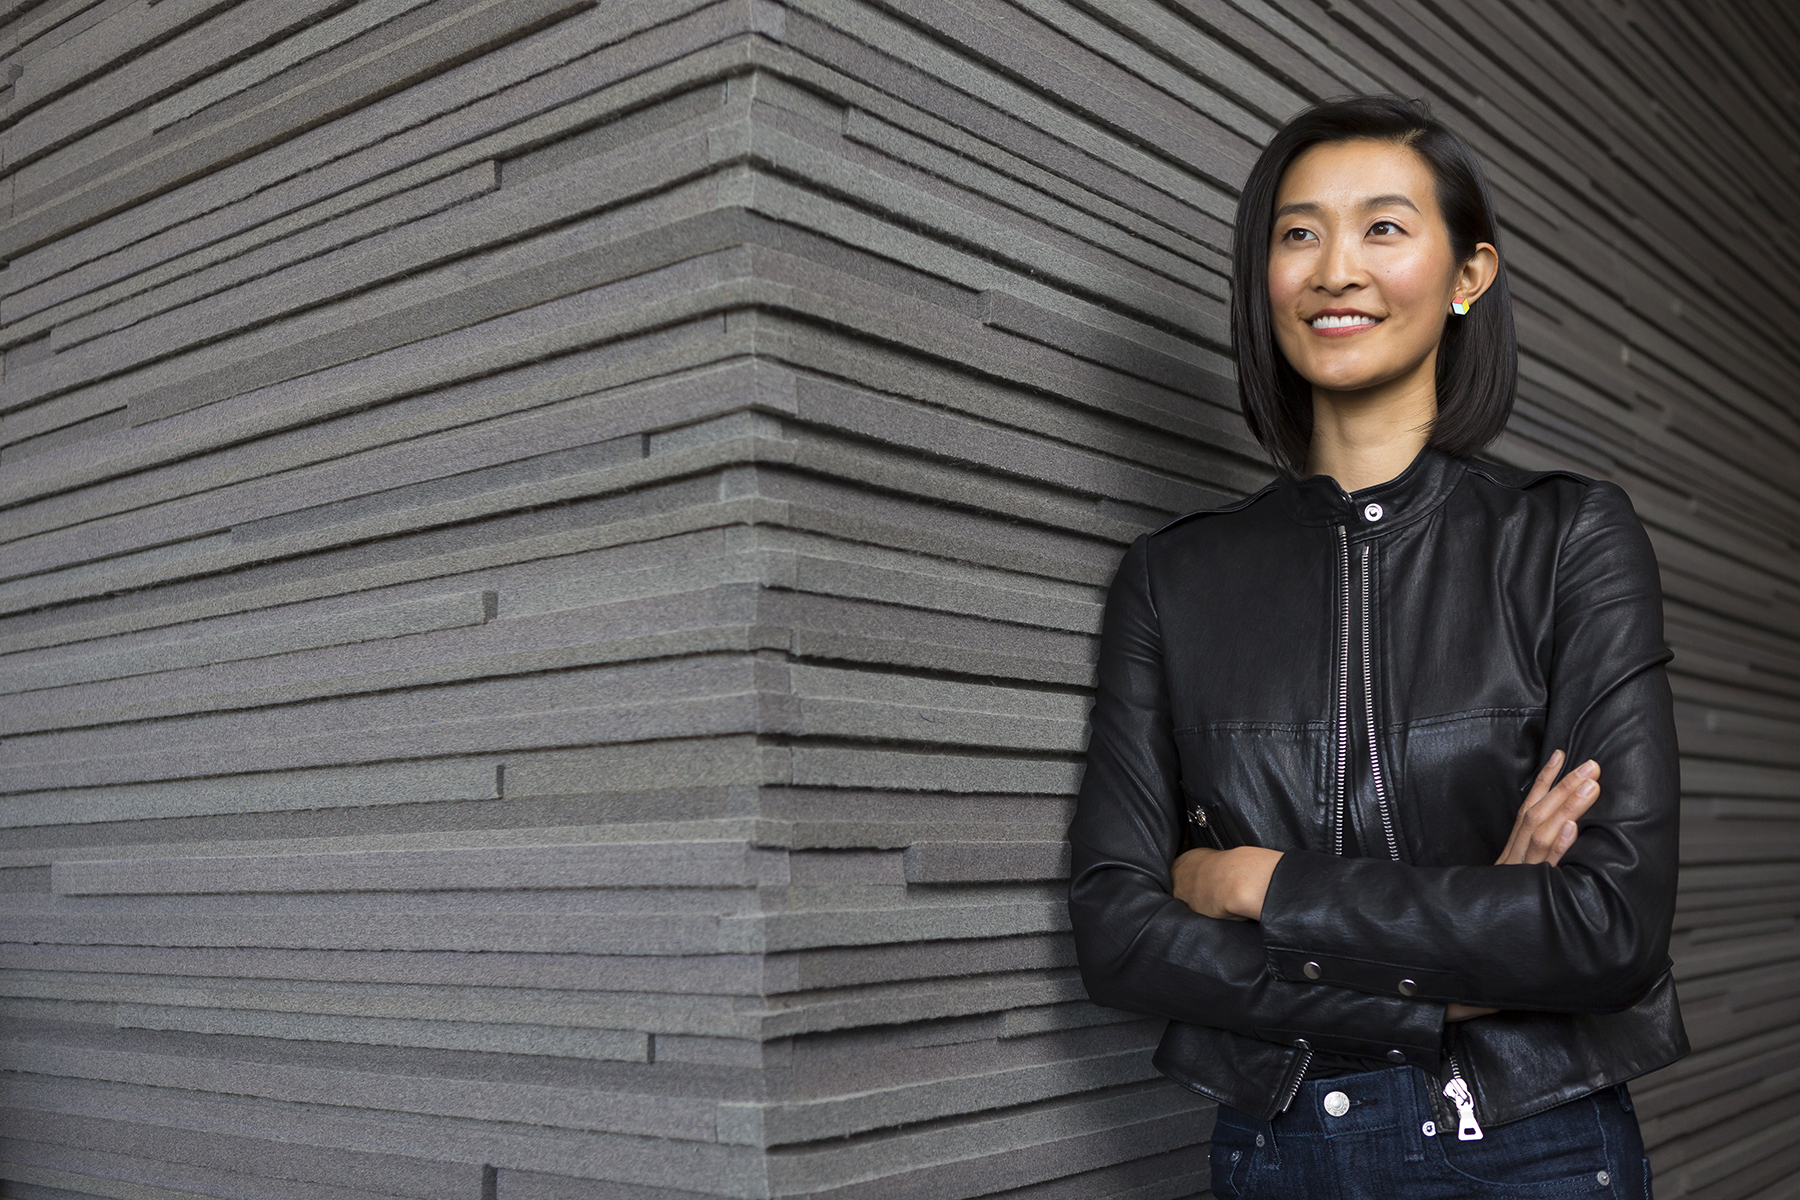 Claire Lew, CEO, KnowYourCompany, poses for a portrait at the  Basecamp HQ offices in Chicago on April 17, 2018. Manuel Martinez/Crain's Chicago Business